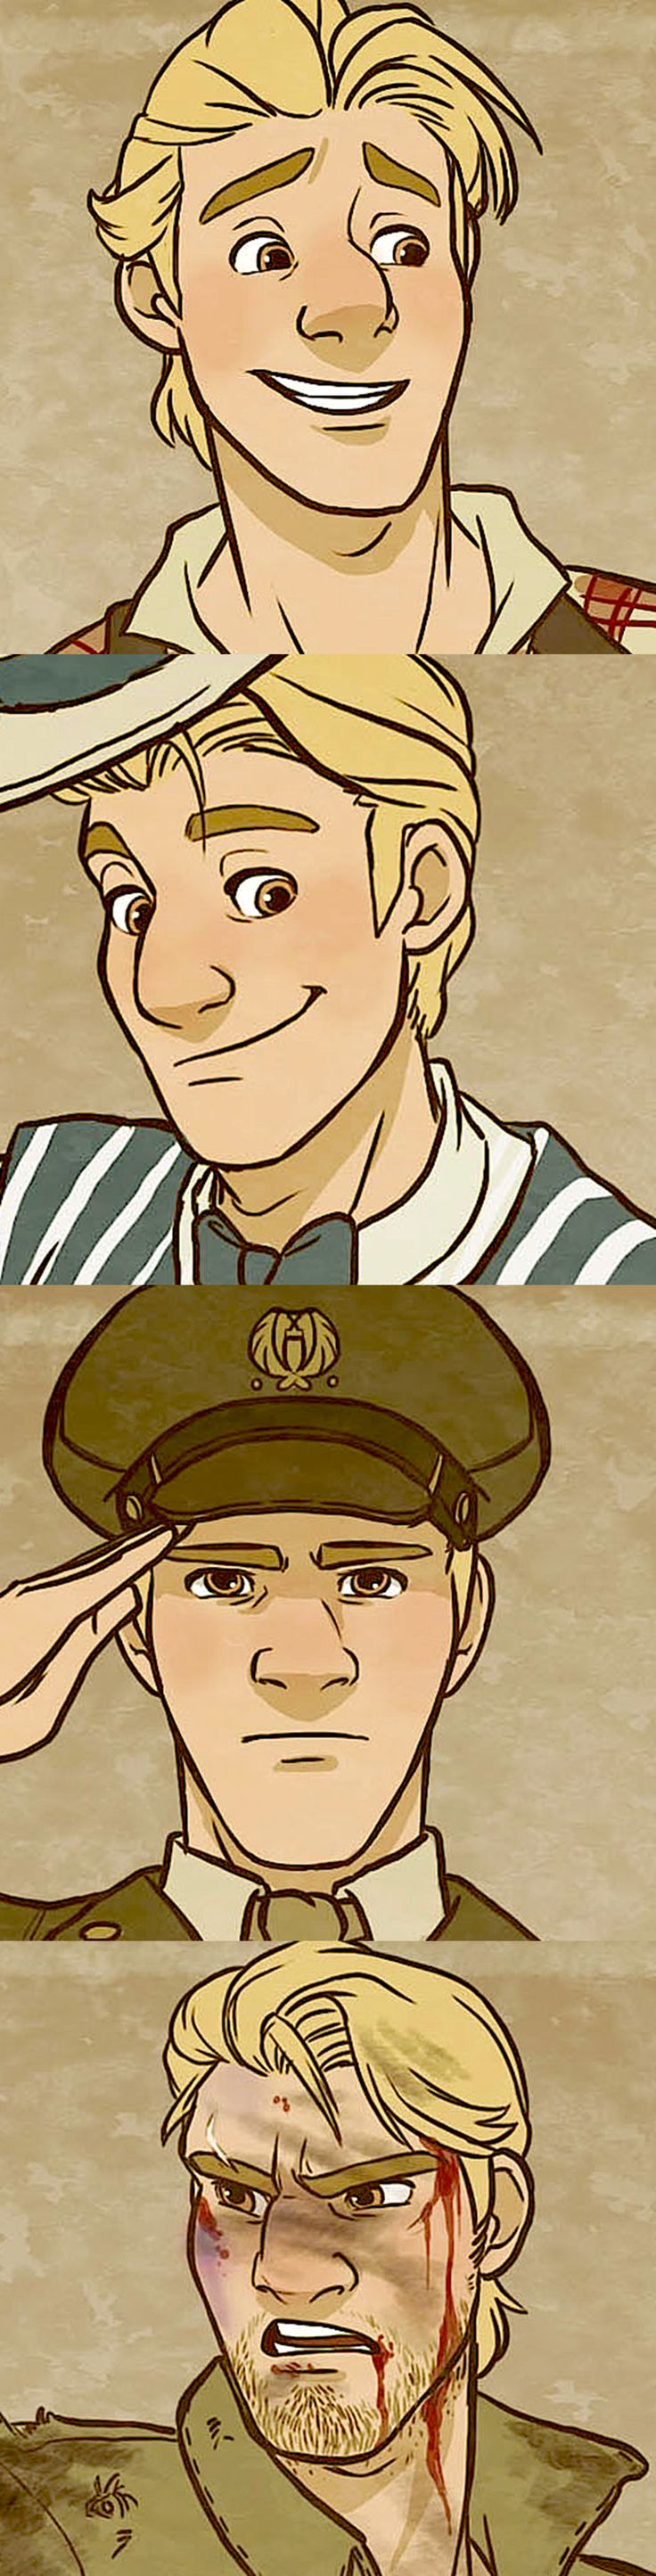 20th Century Kristoff!!! XD Awesome!!!!!